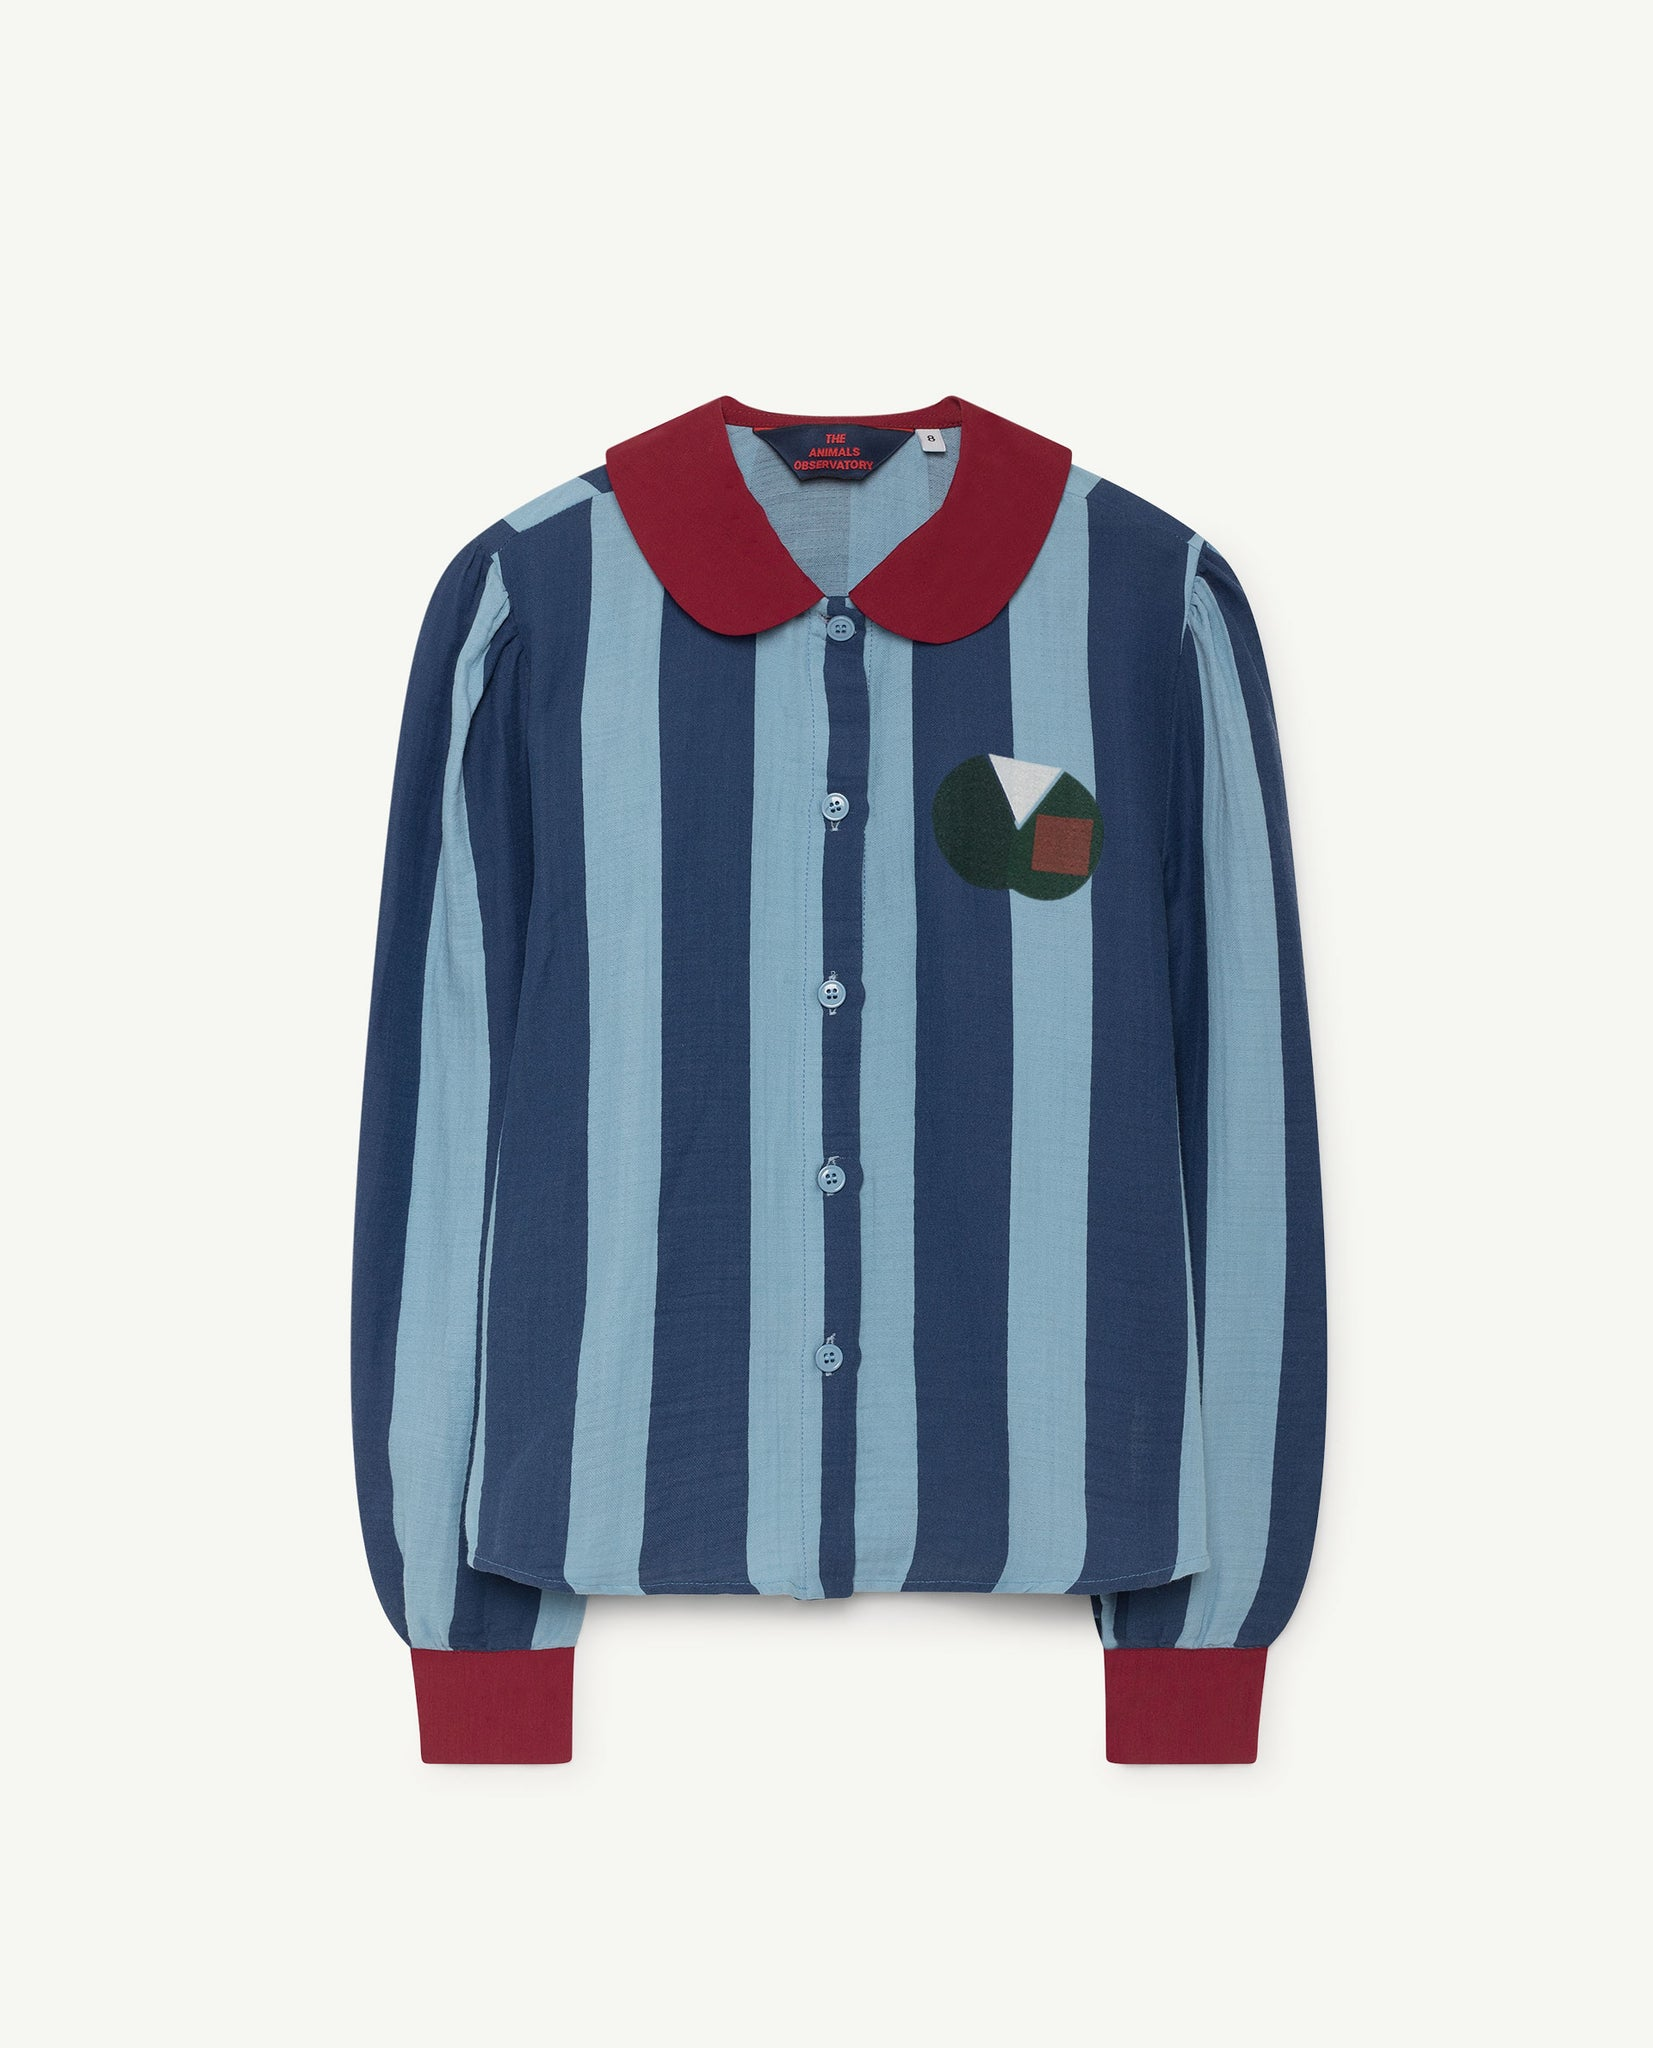 Kangaroo kids shirt - blue stripe